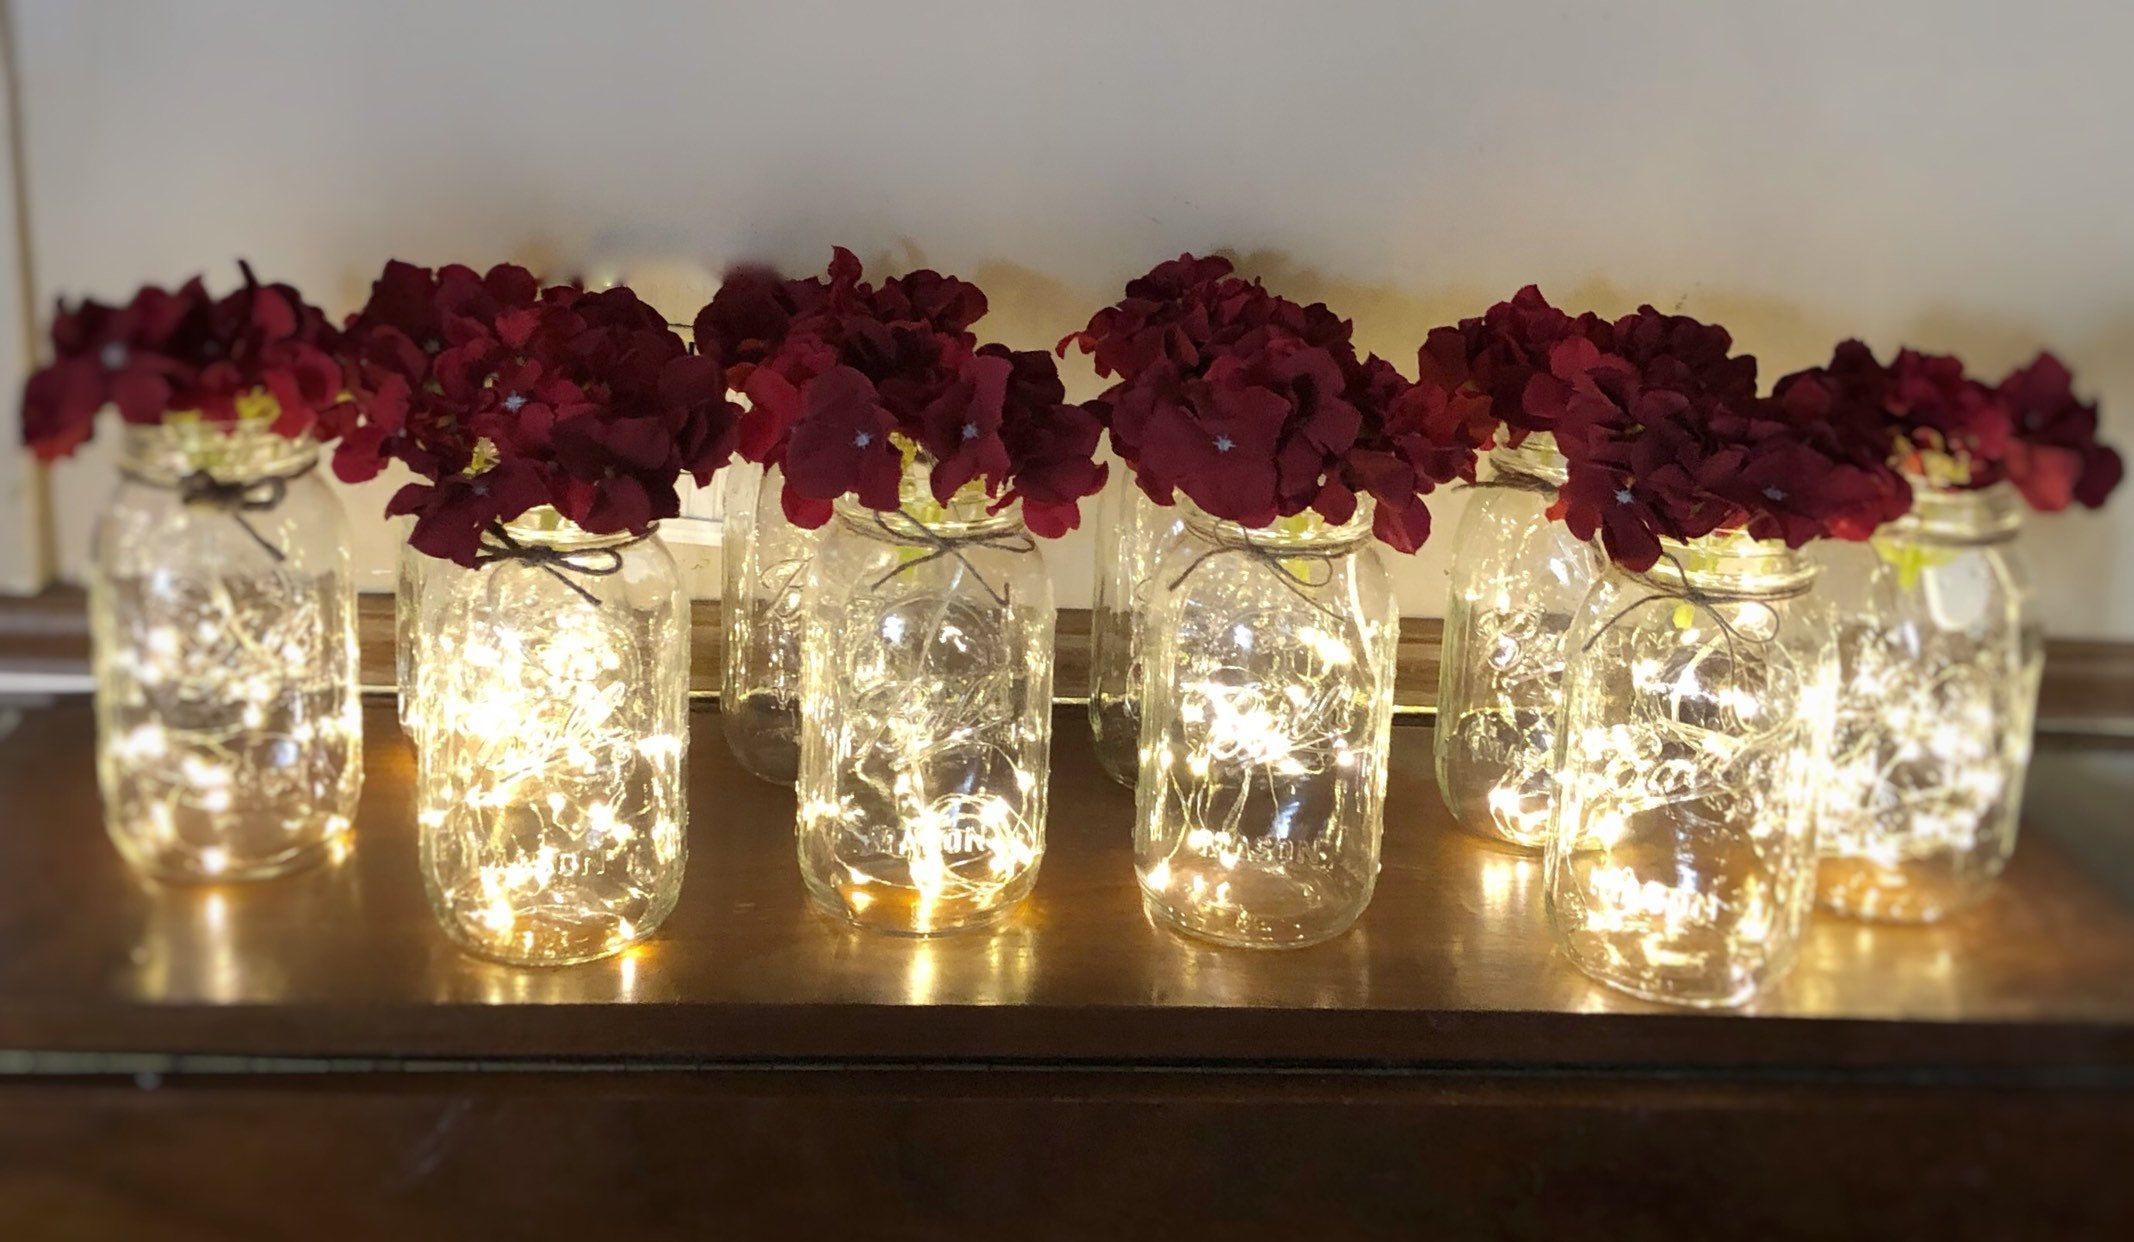 10 Floral Lights Mason Jar Centerpieces Fairy Lights Rustic Wedding Decoration Wedding Centerpieces Diy Rustic Wedding Centerpieces Country Party Decorations